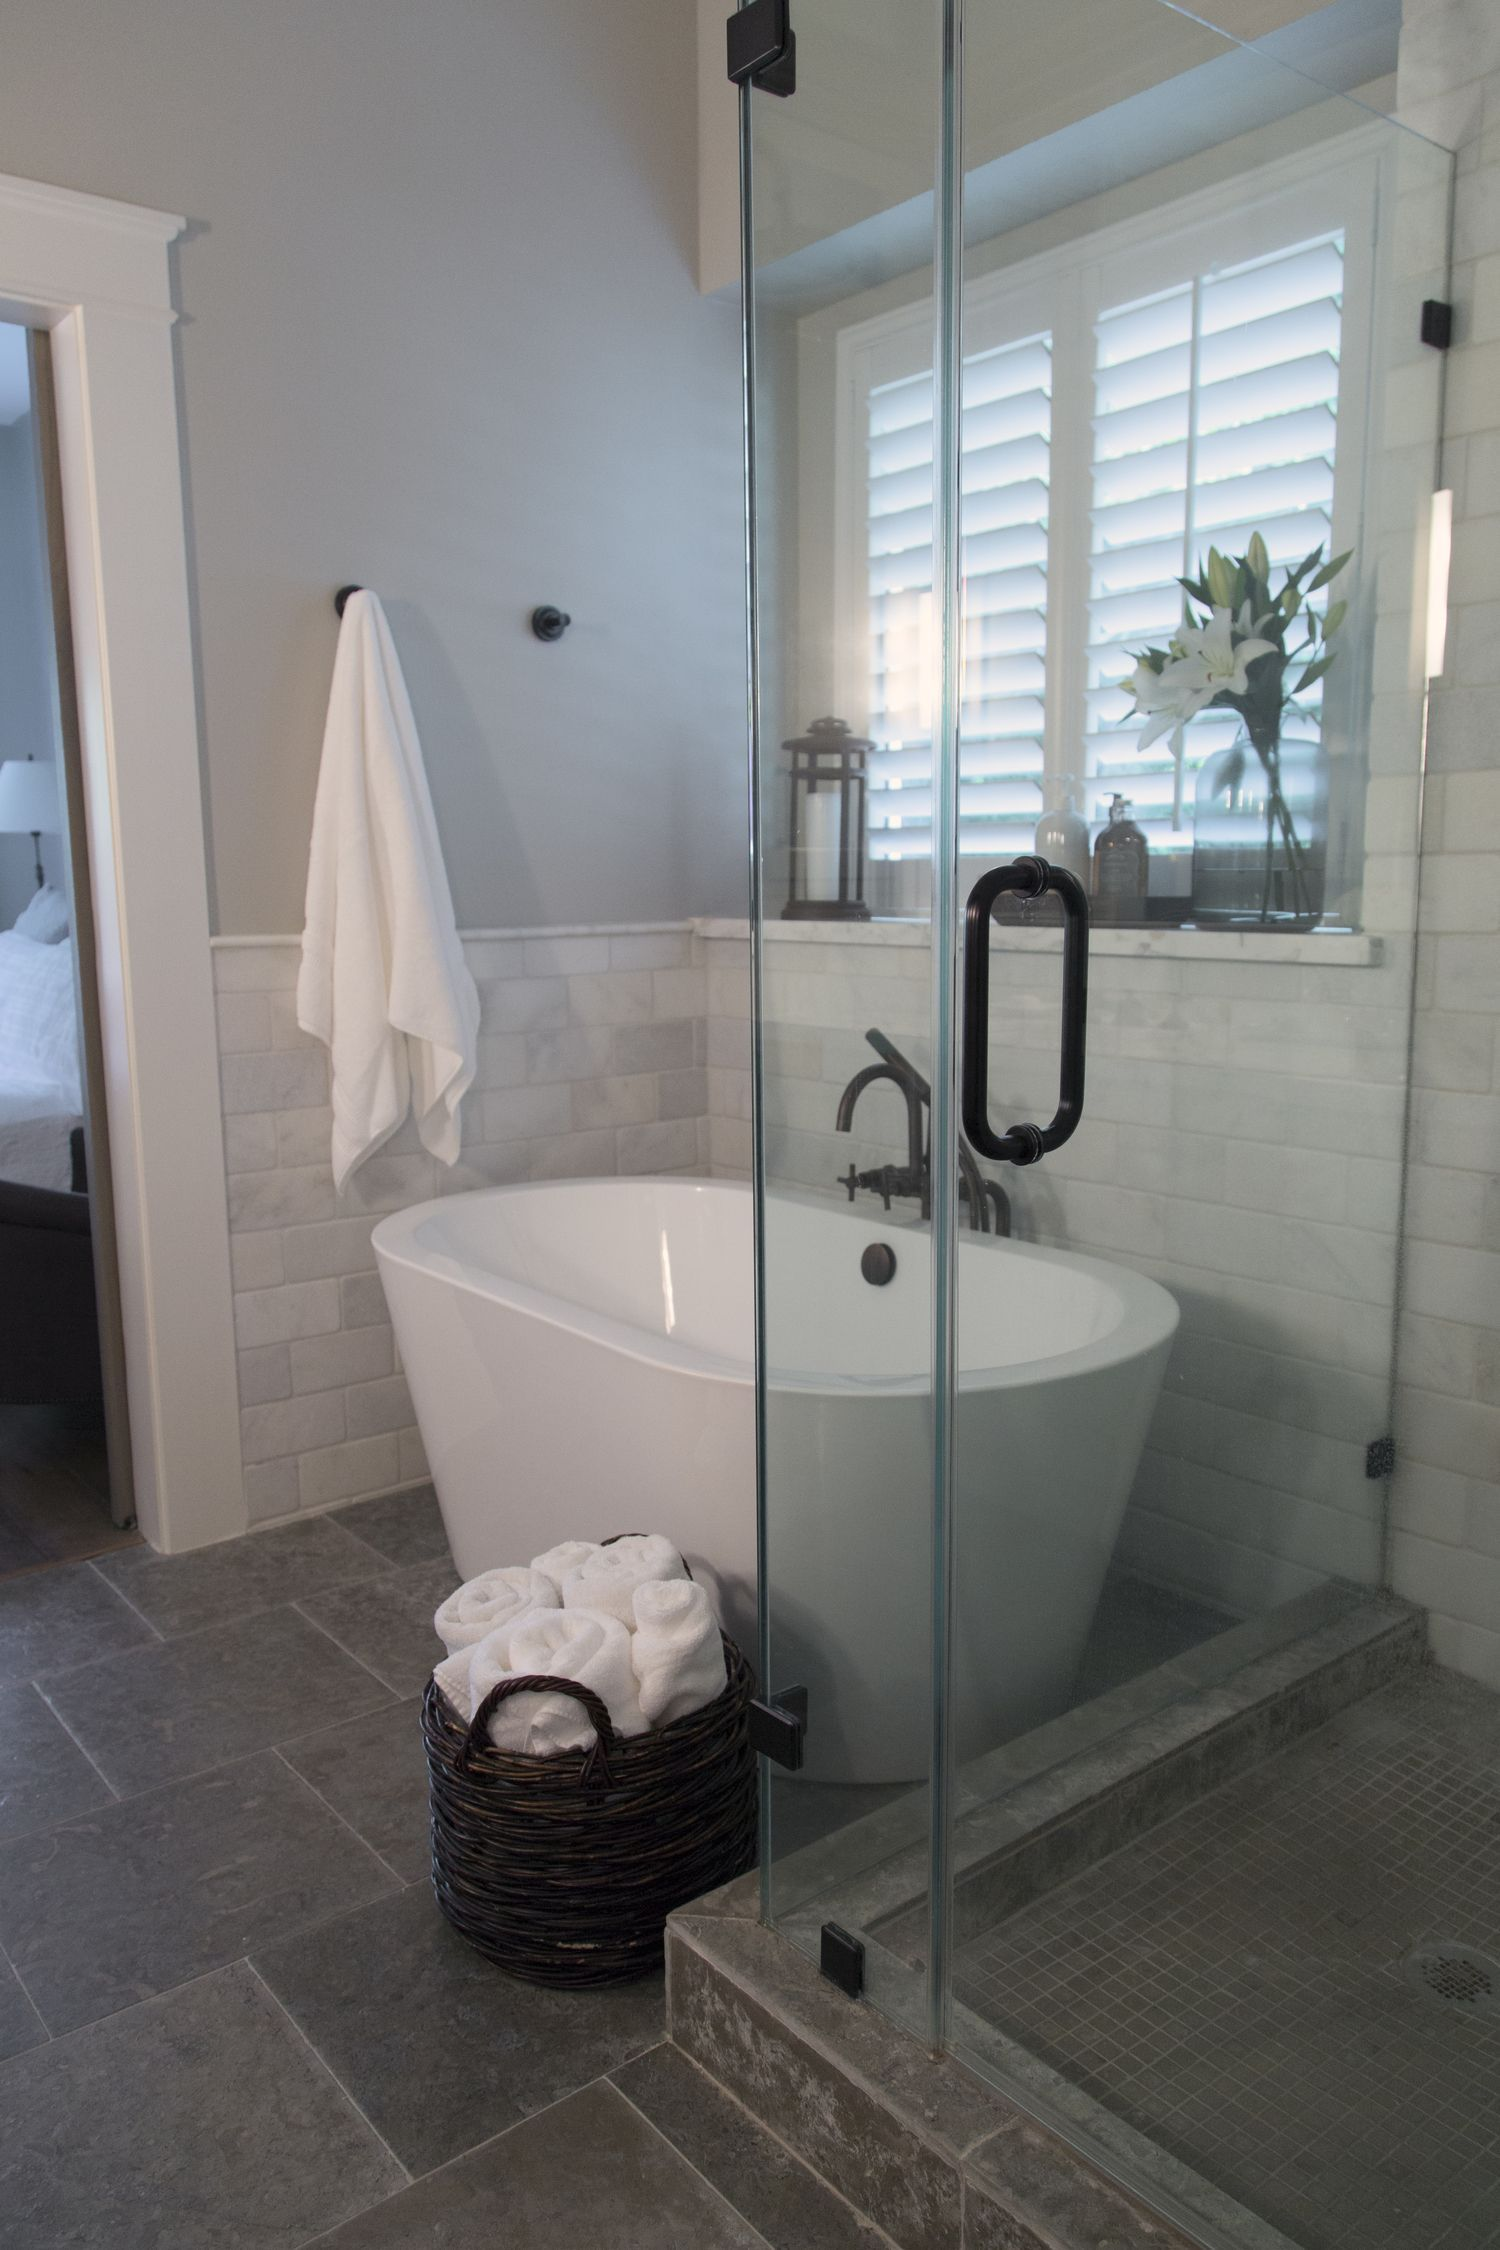 10 beautiful half bathroom ideas for your home bathrooms rh pinterest com